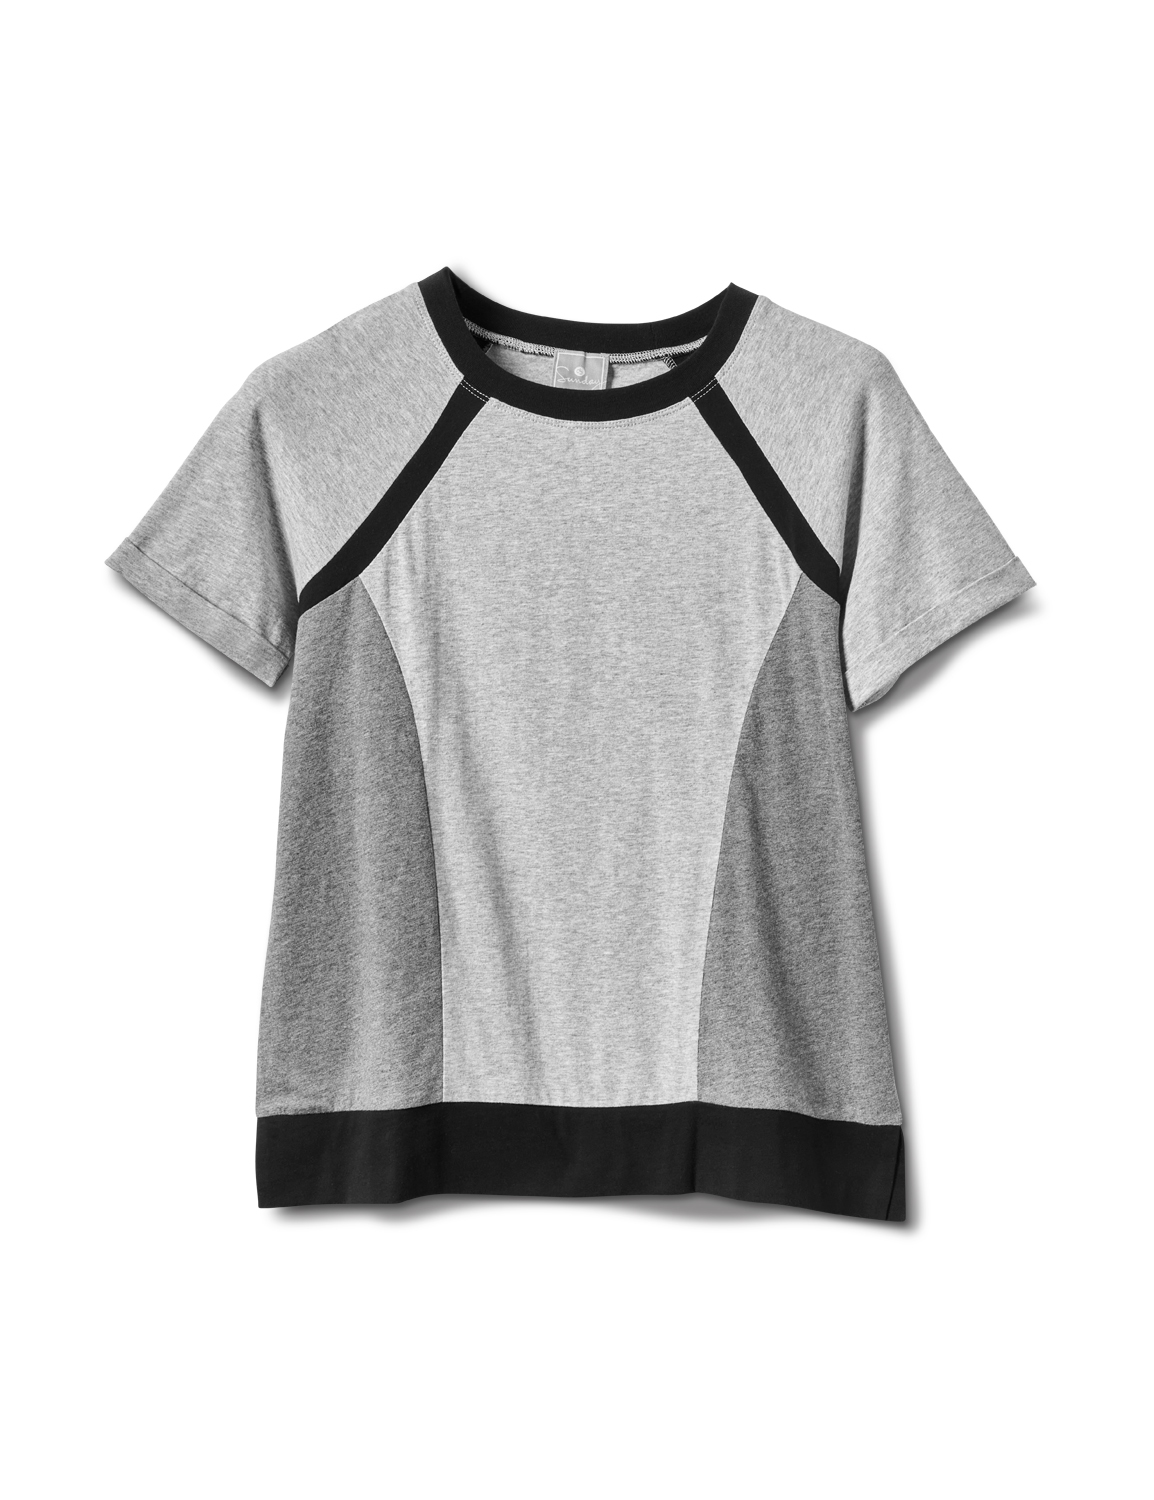 Color Block Knit Top -Grey/Black - Front